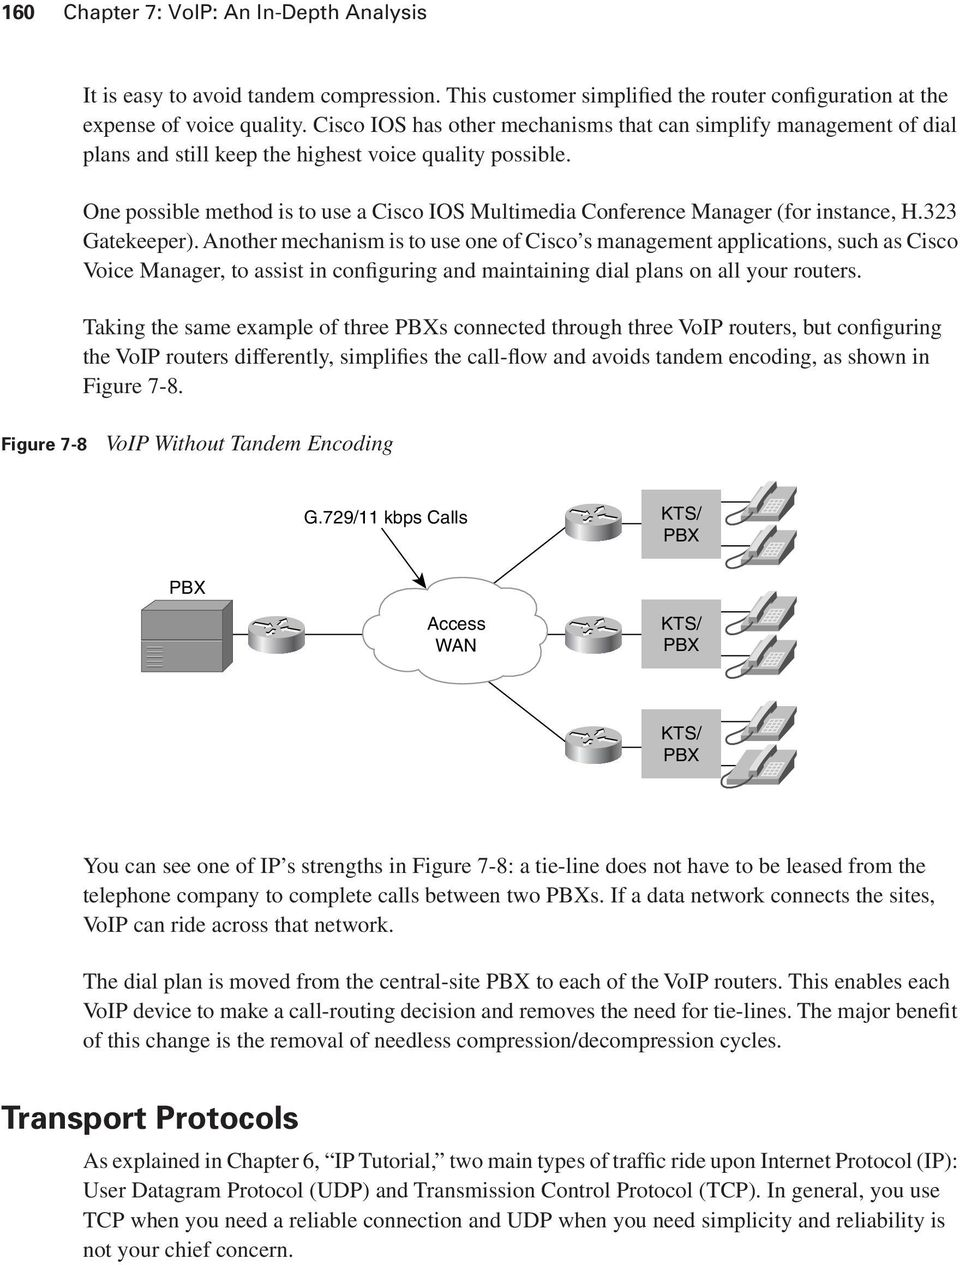 One possible method is to use a Cisco IOS Multimedia Conference Manager (for instance, H.323 Gatekeeper).